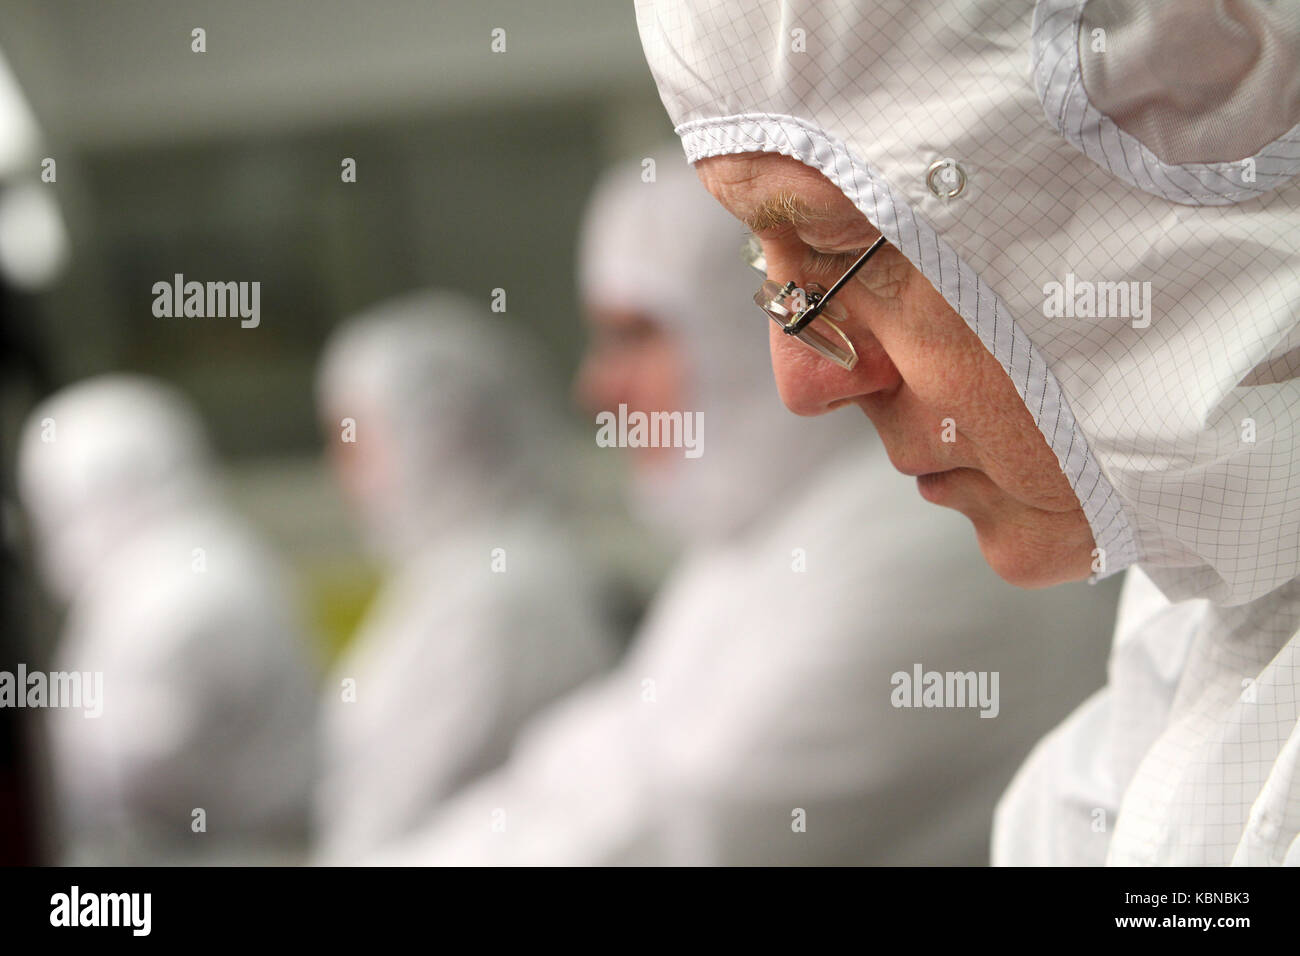 Scientists working in clean room environment - Stock Image